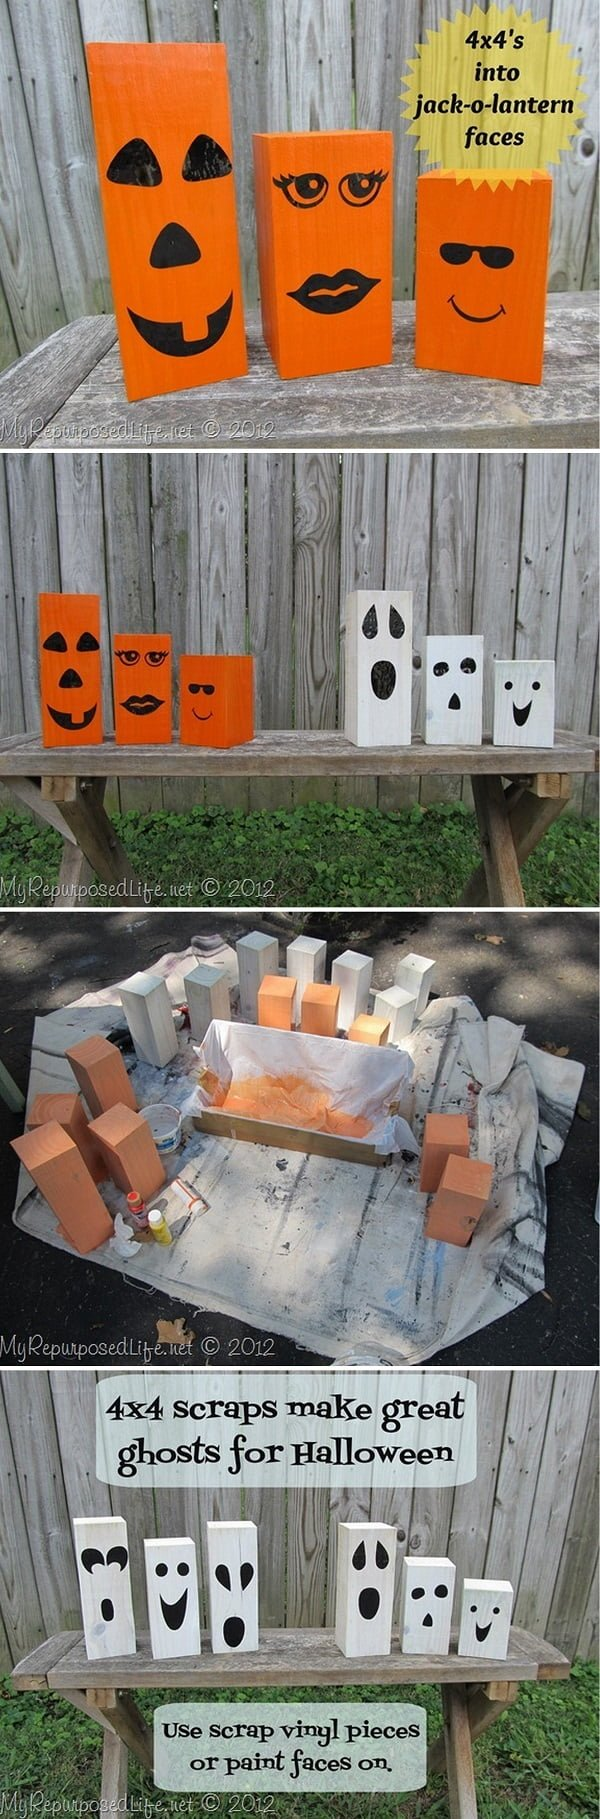 Check out the tutorial on how to make #DIY 4x4 post jack-o-lanterns for #Halloween home decoration #repurpose #upcycle #homedecor